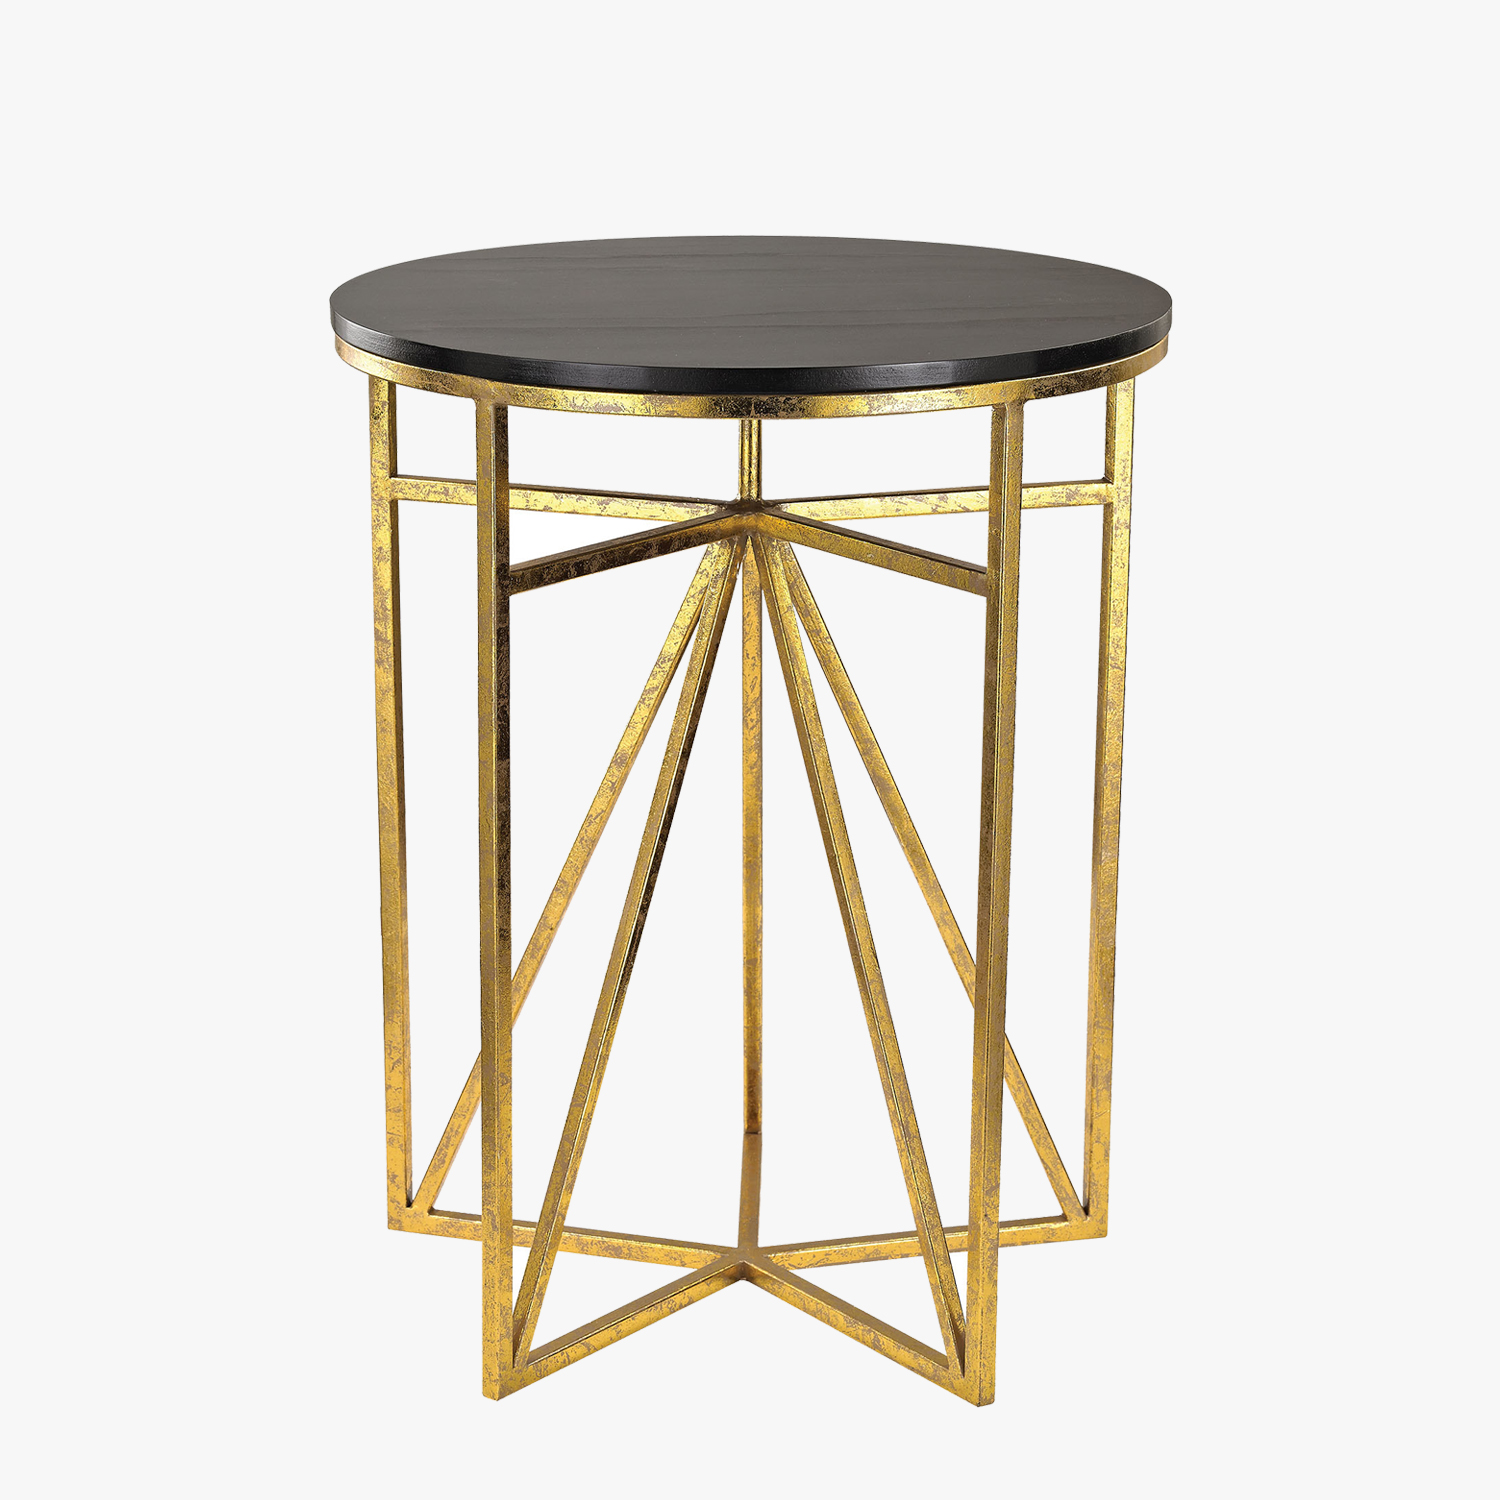 etoile antique gold accent table dear keaton stool multi colored target teal white side canadian tire outdoor small and glass coffee nautical dining room chandelier oak nest